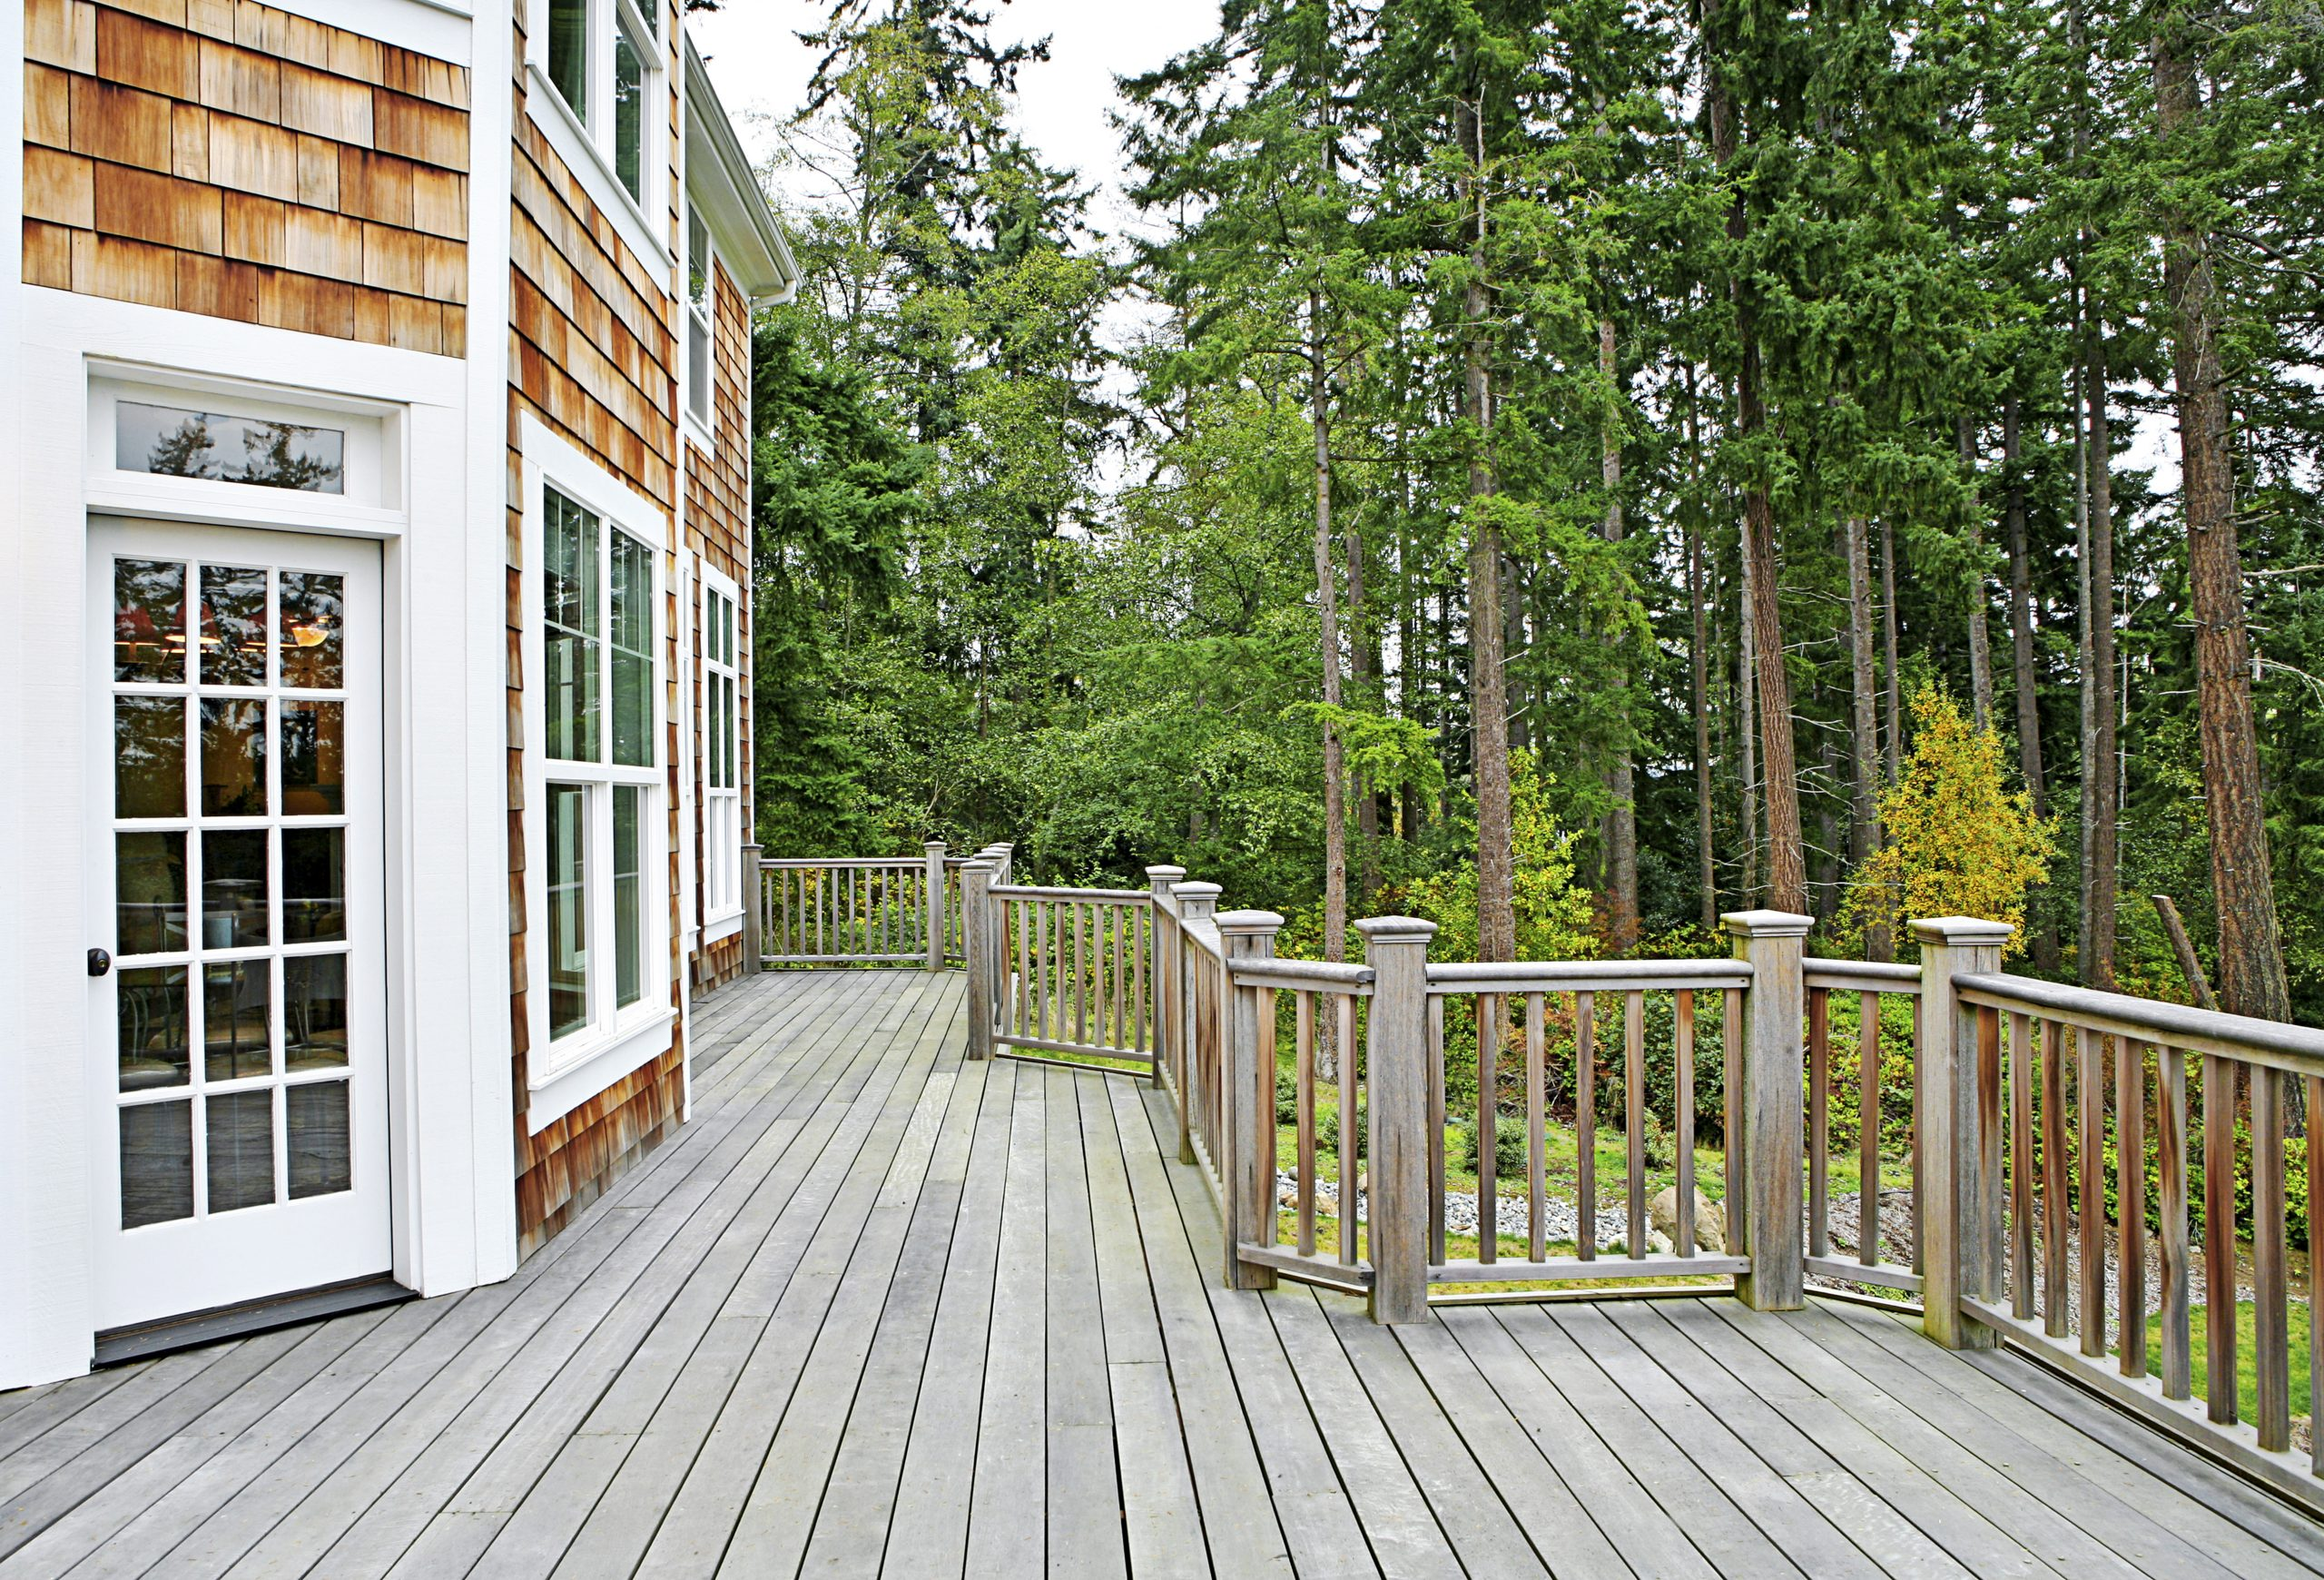 Wooden deck on house